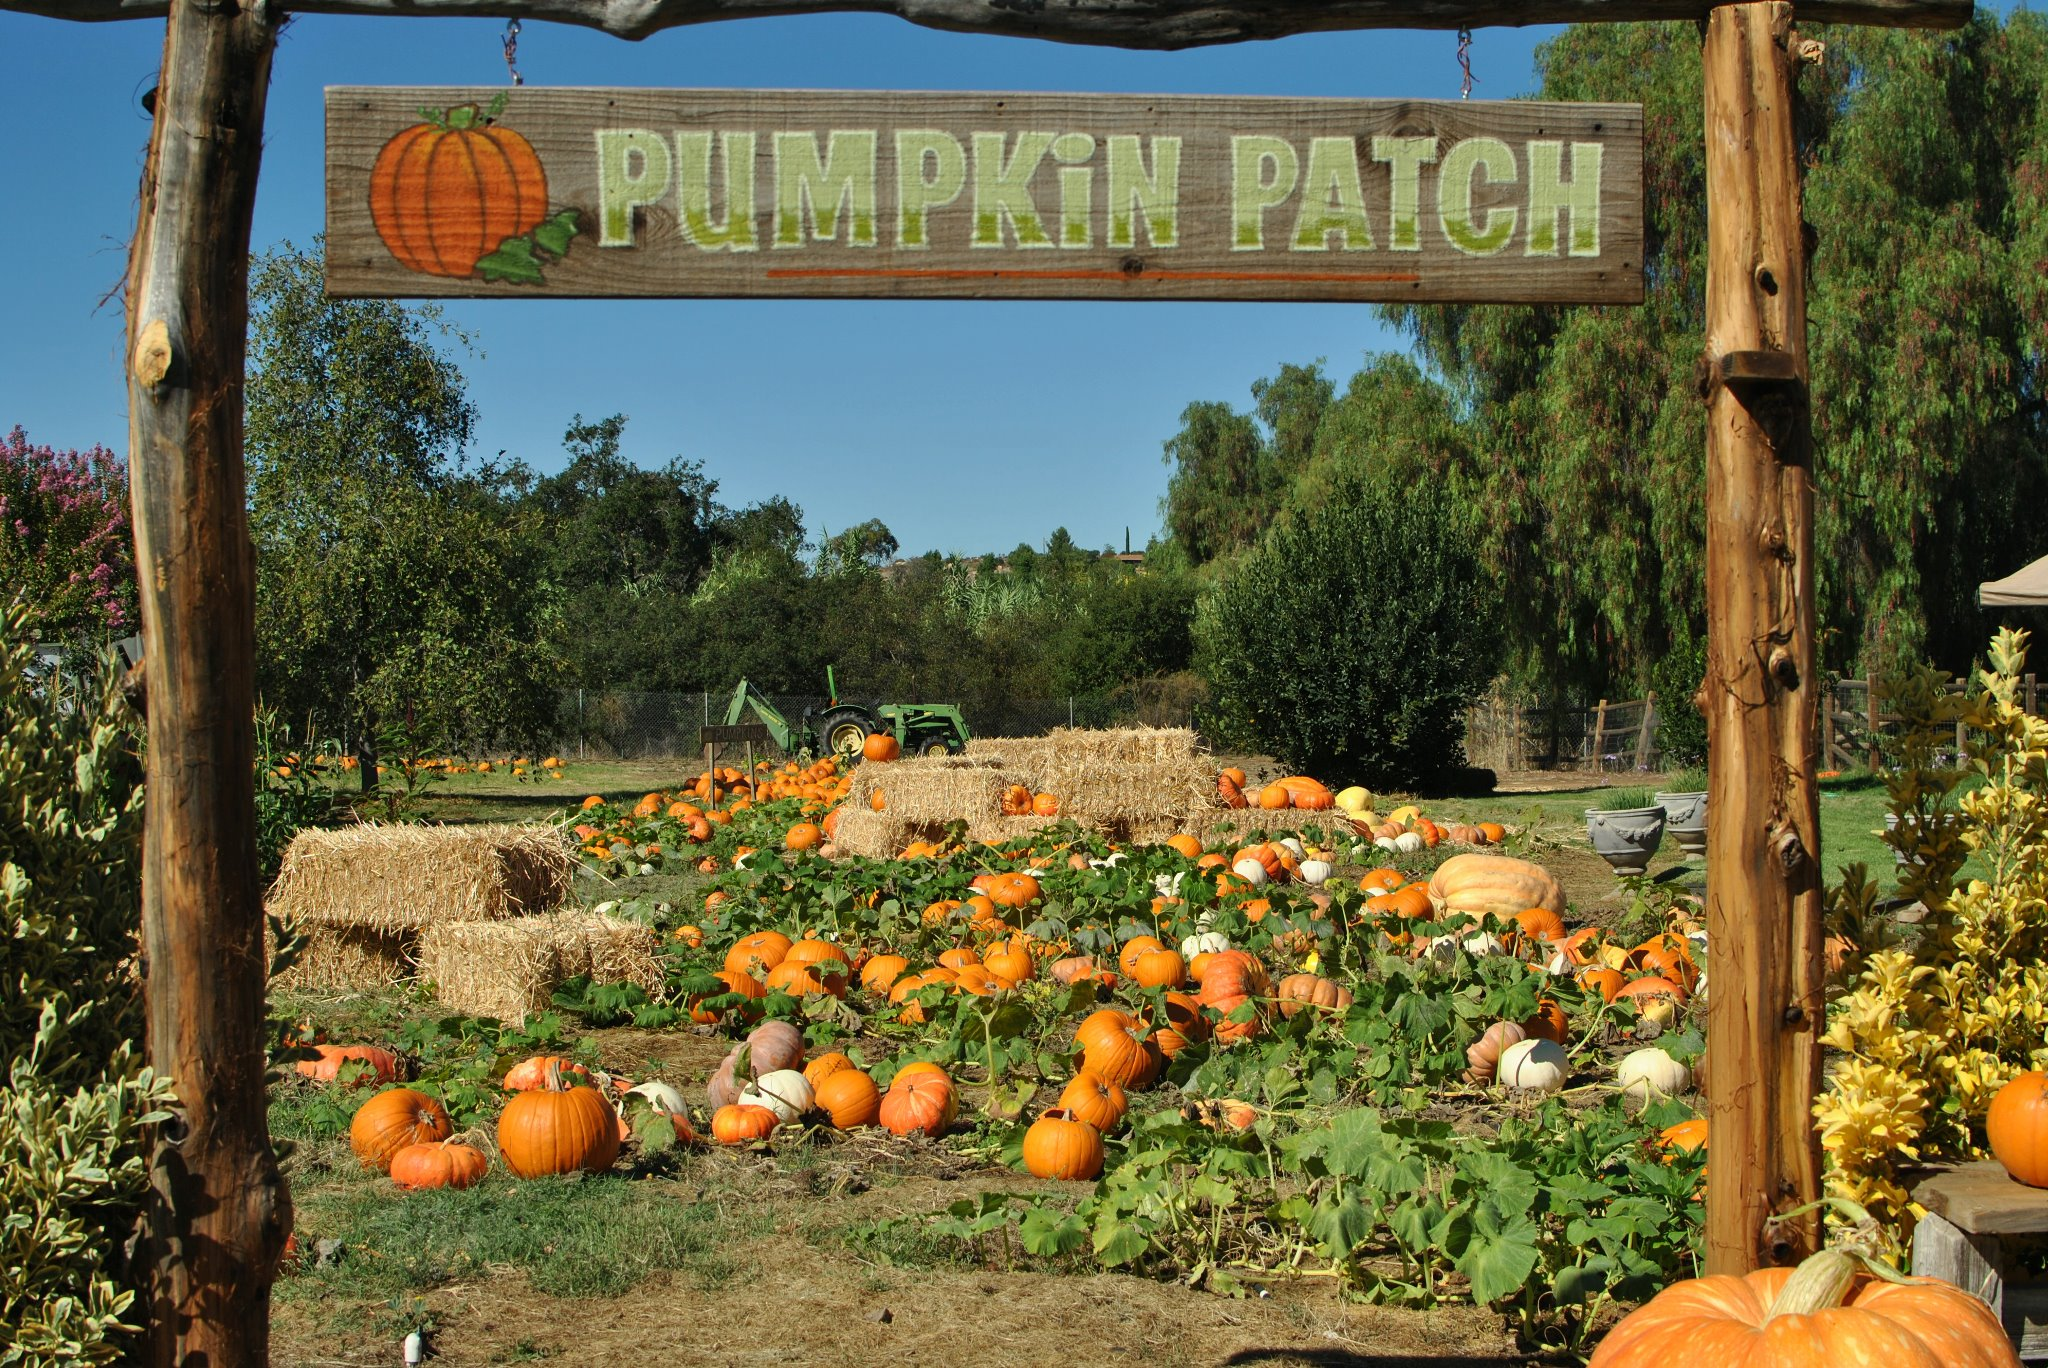 Pumpkin Patch sign and pumpkins at Summer Farms